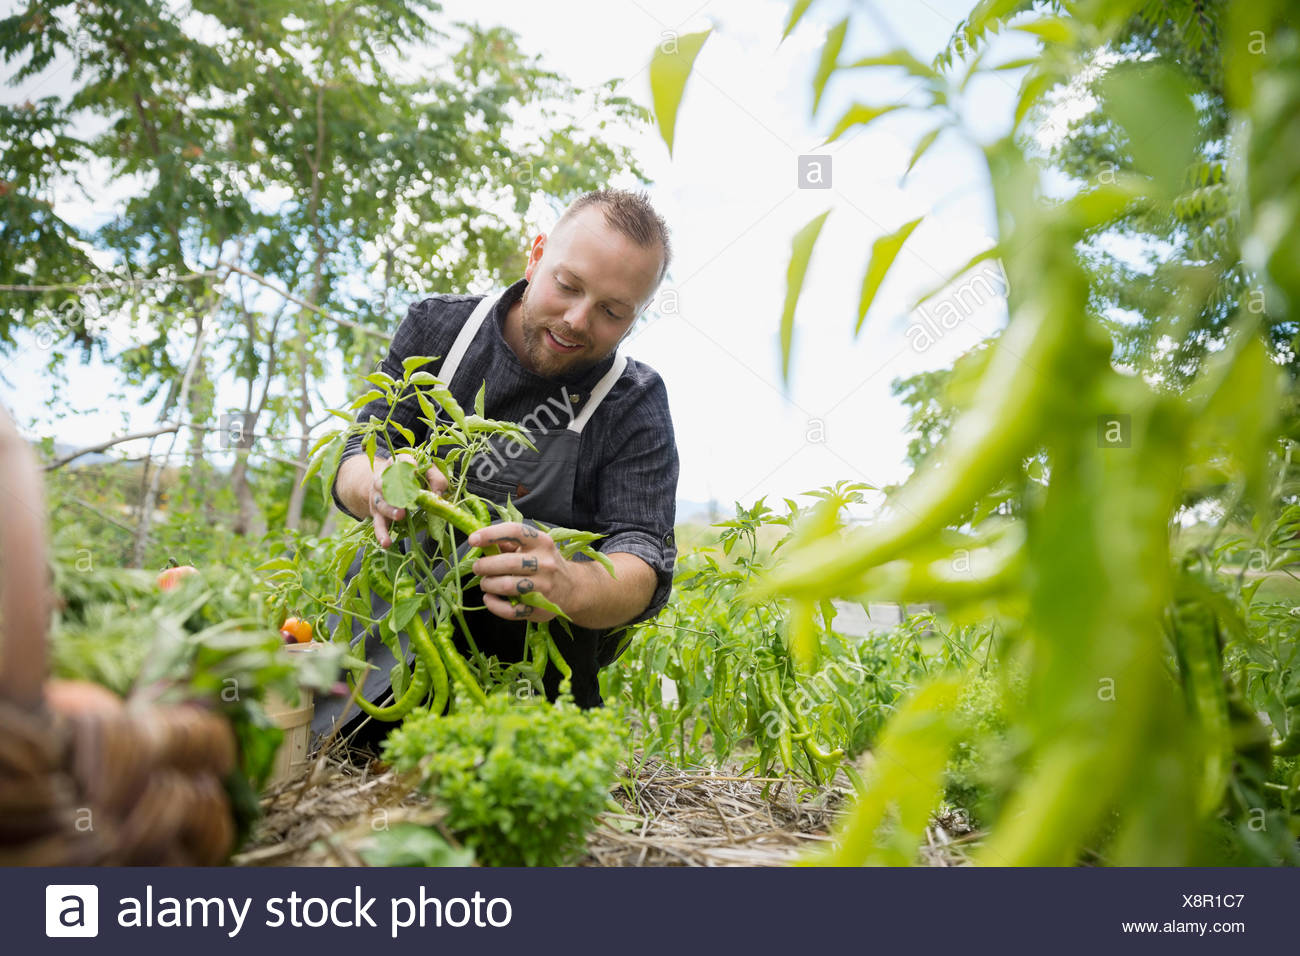 Farm-to-table chef harvesting green peans in vegetable garden - Stock Image